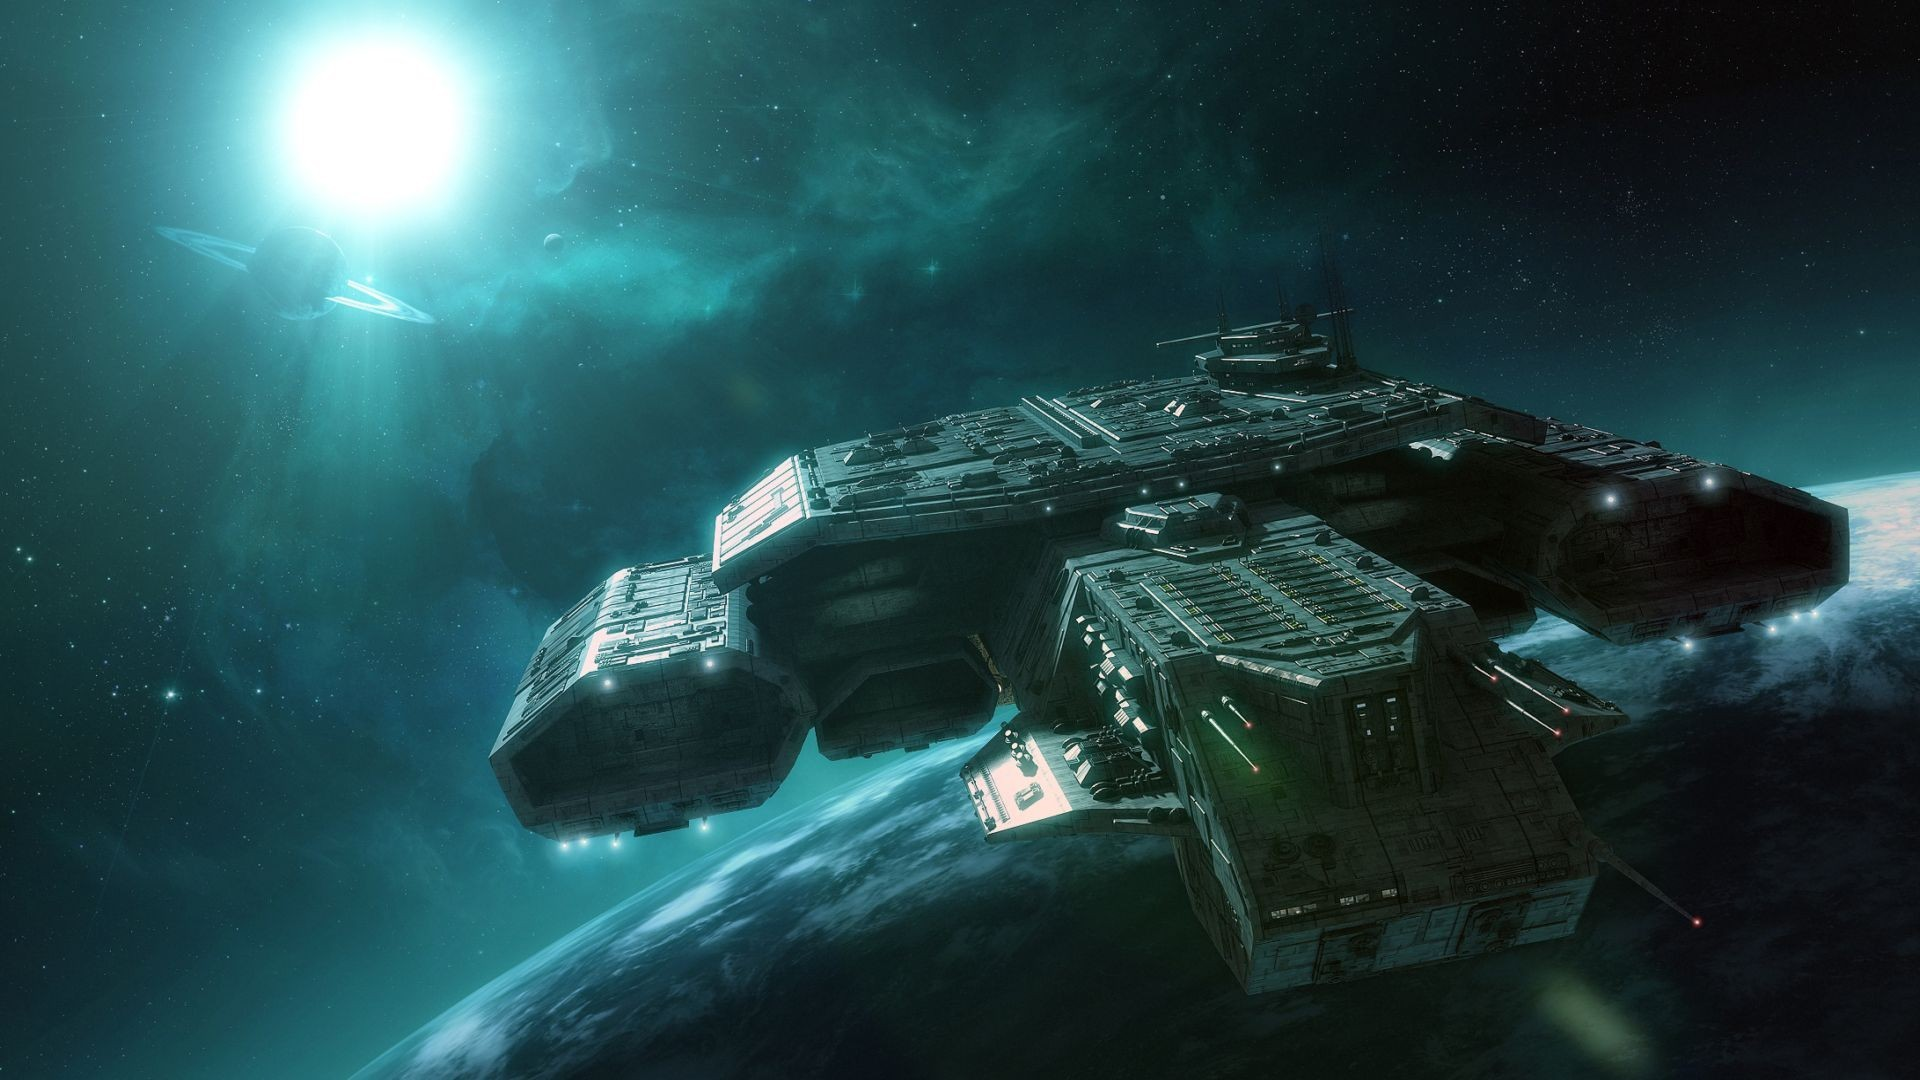 science fiction vehicles 3d HD Wallpaper